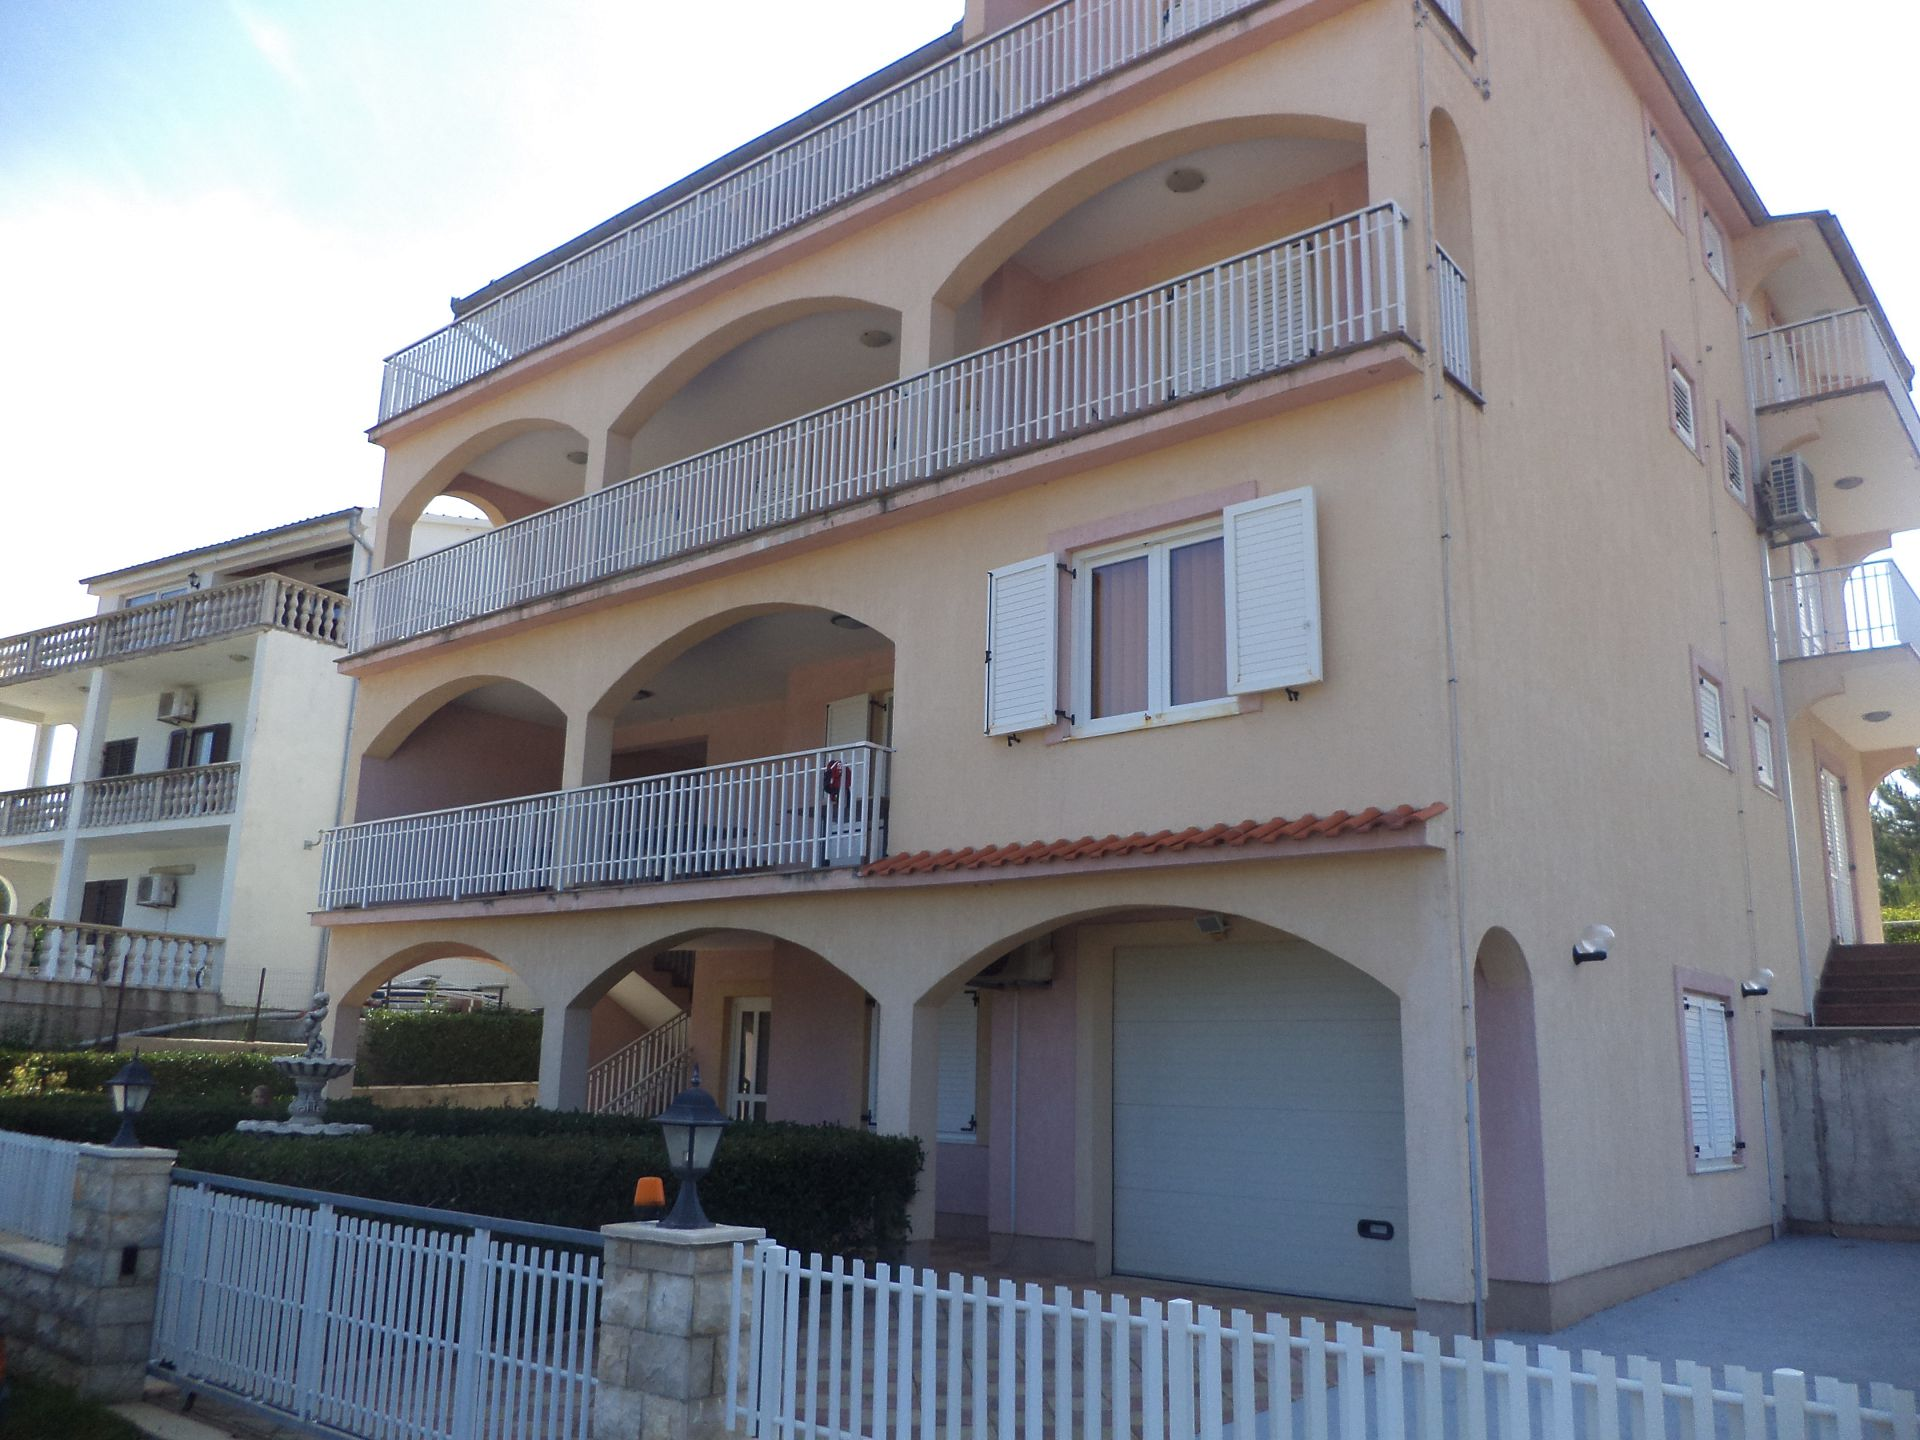 8243 - Pridraga - Apartments Croatia